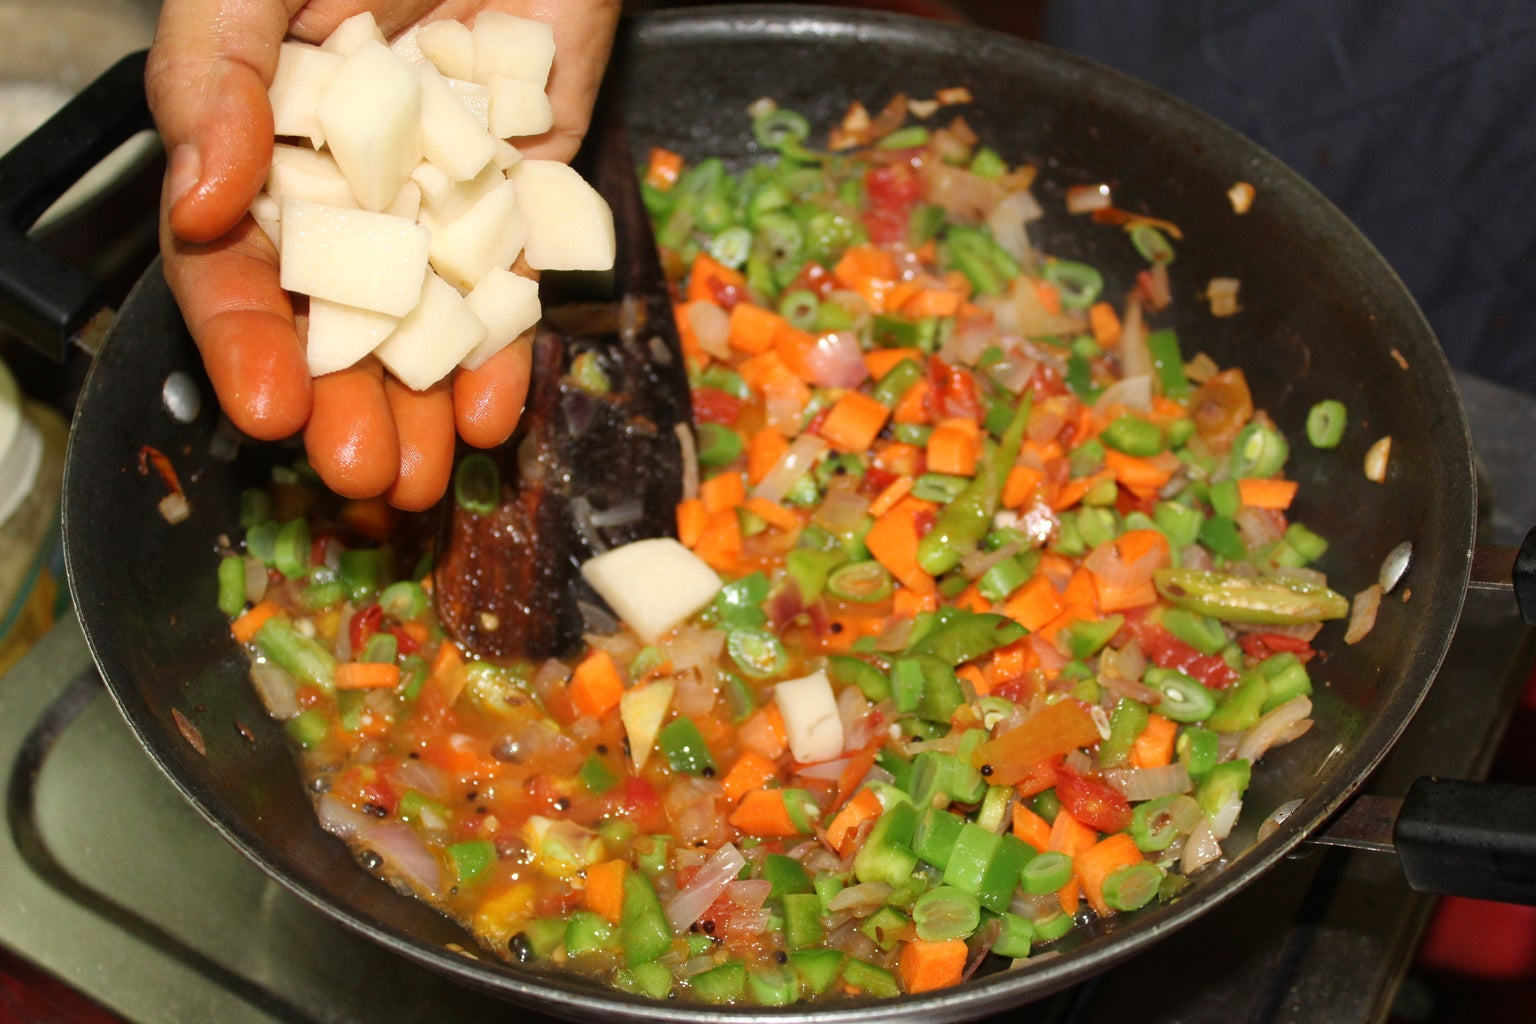 Add the Chopped Vegetables